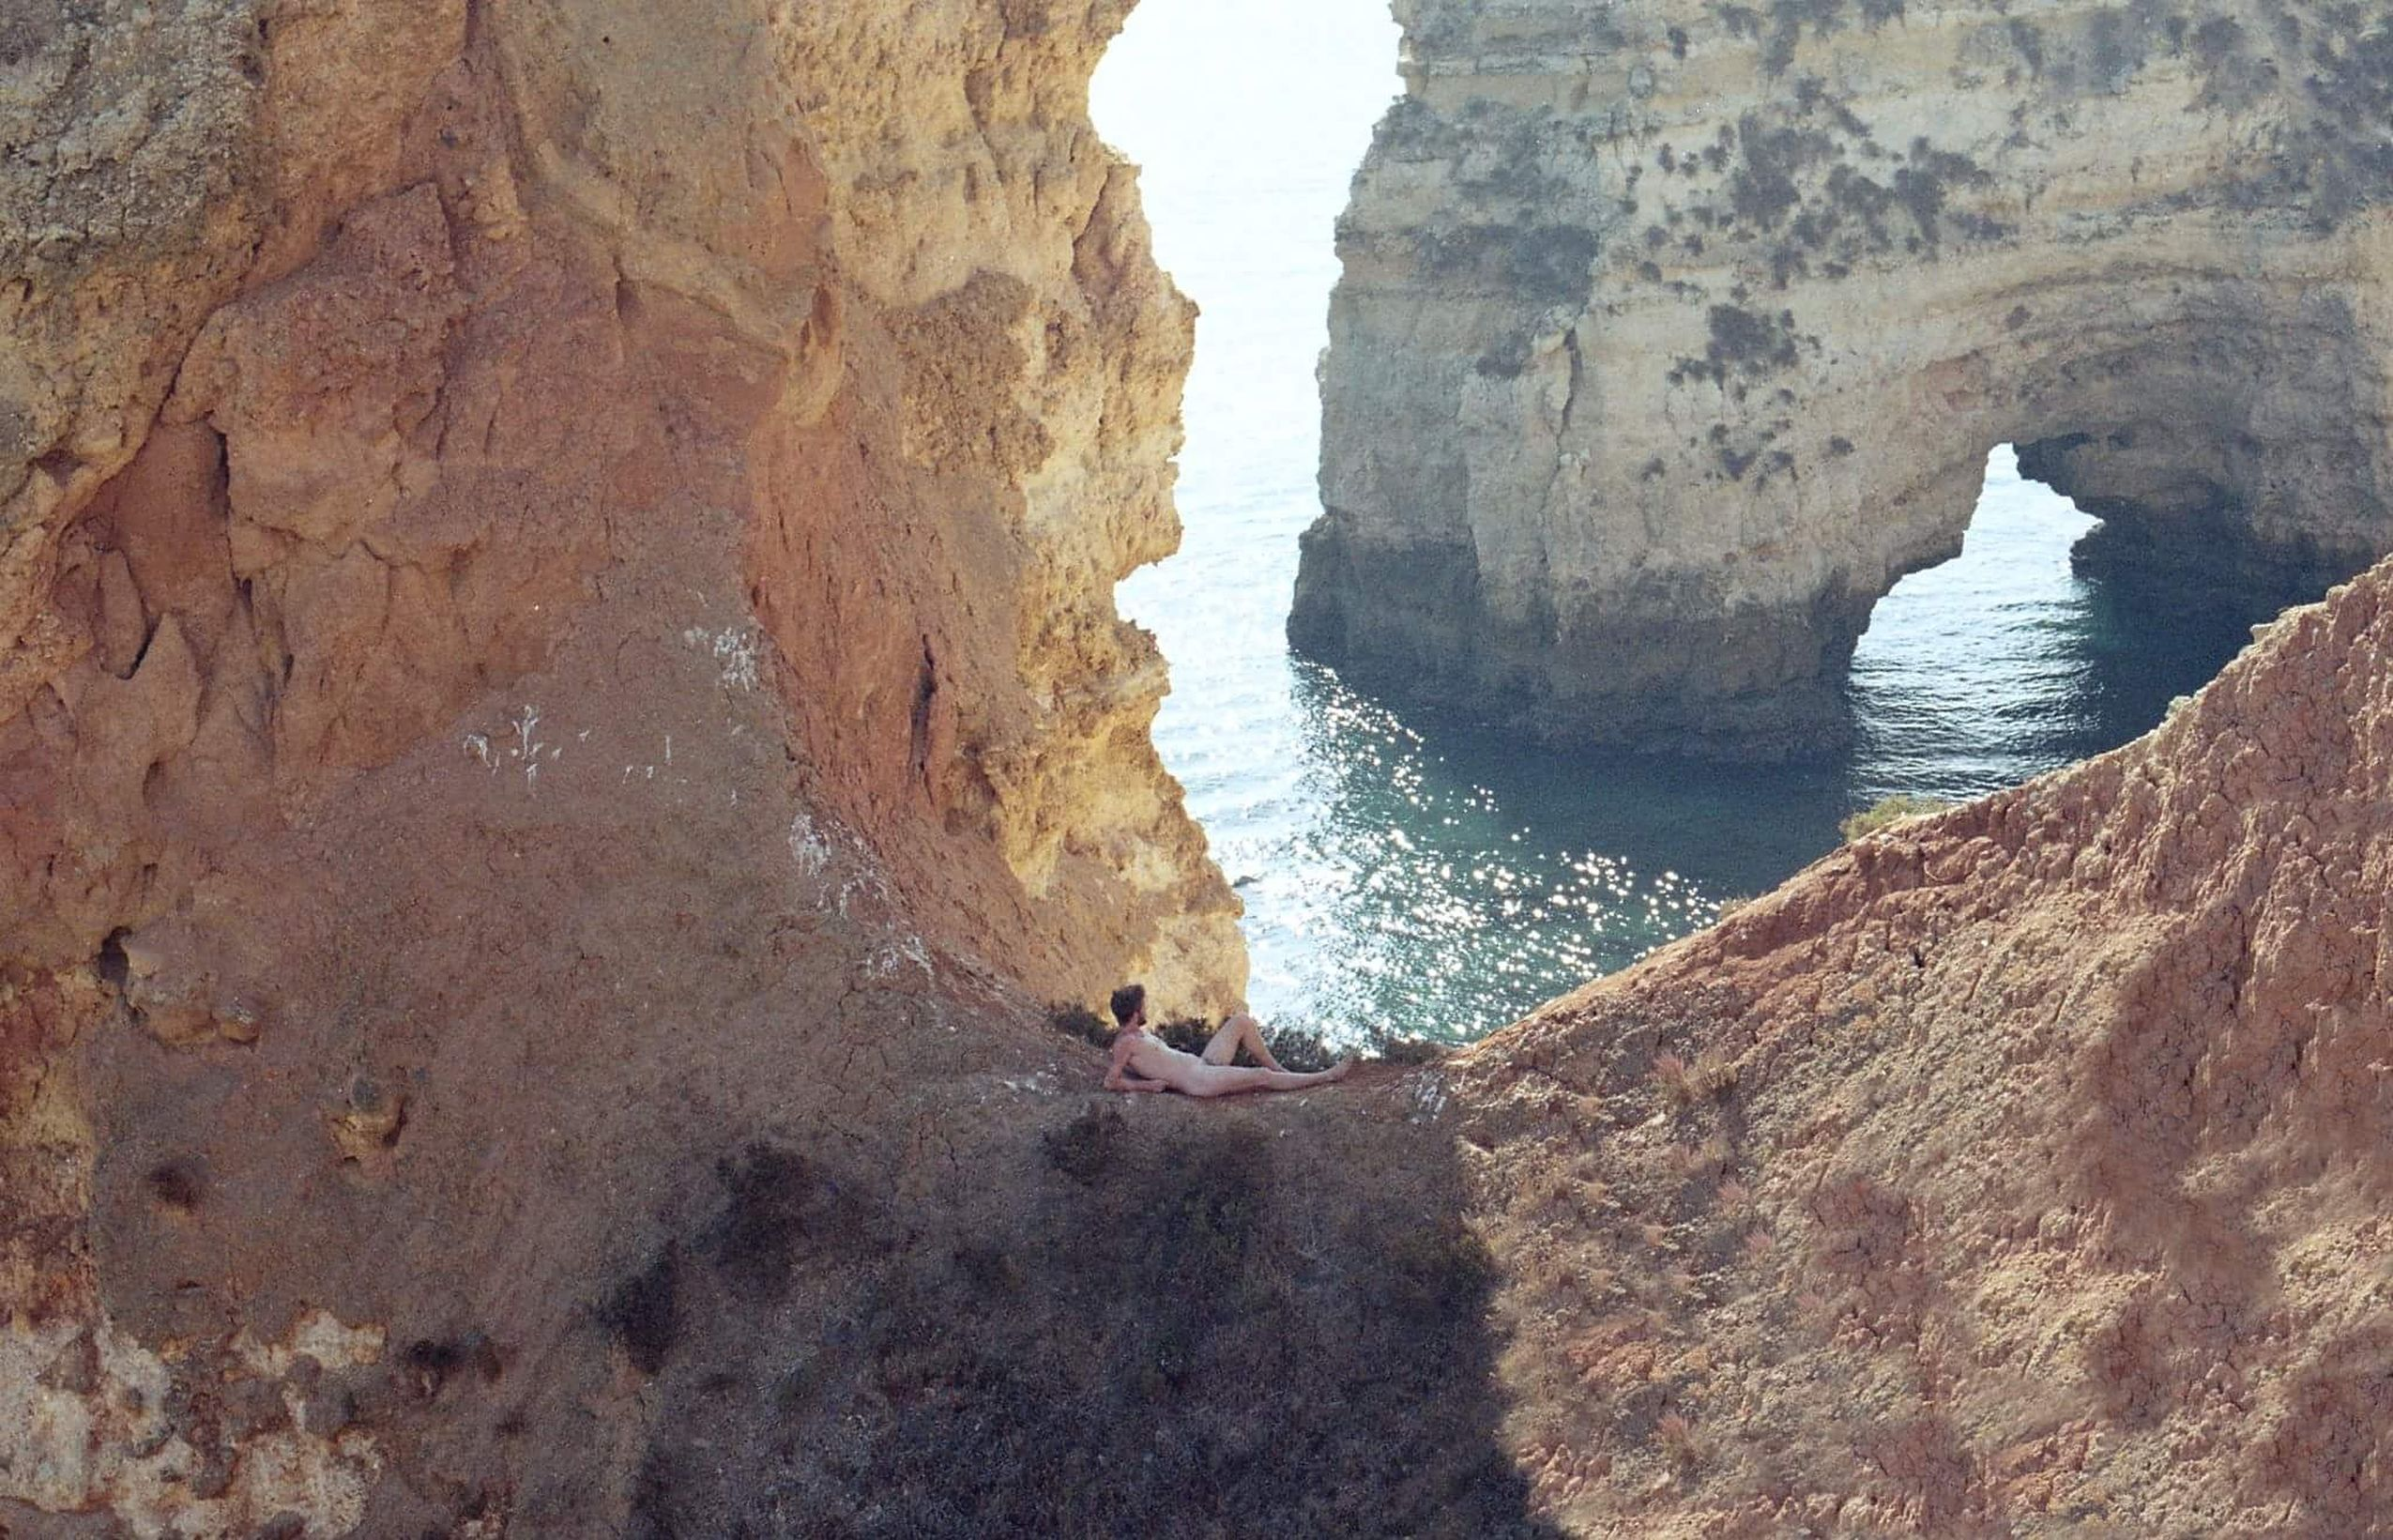 Portugal Boys Project One Person Nature Boys 35mm Film Analogue Photography Paradise Beach